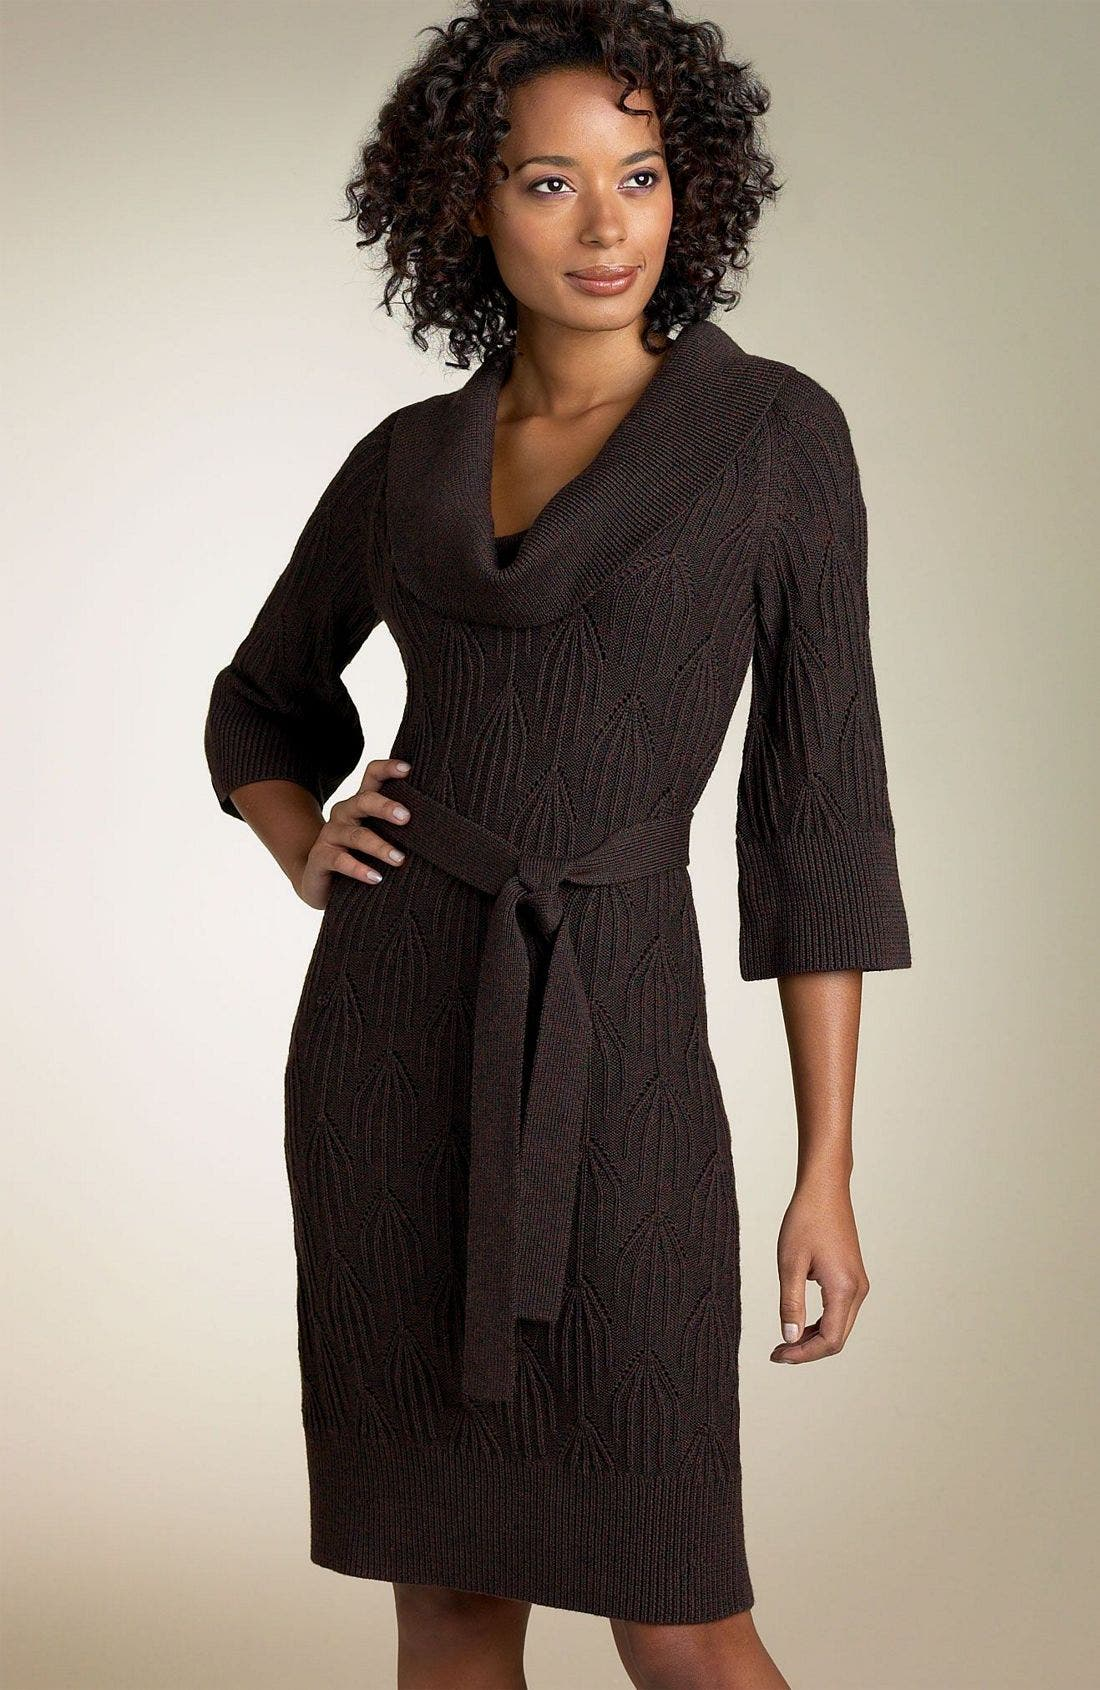 Alternate Image 1 Selected - Laundry by Design Belted Sweater Dress